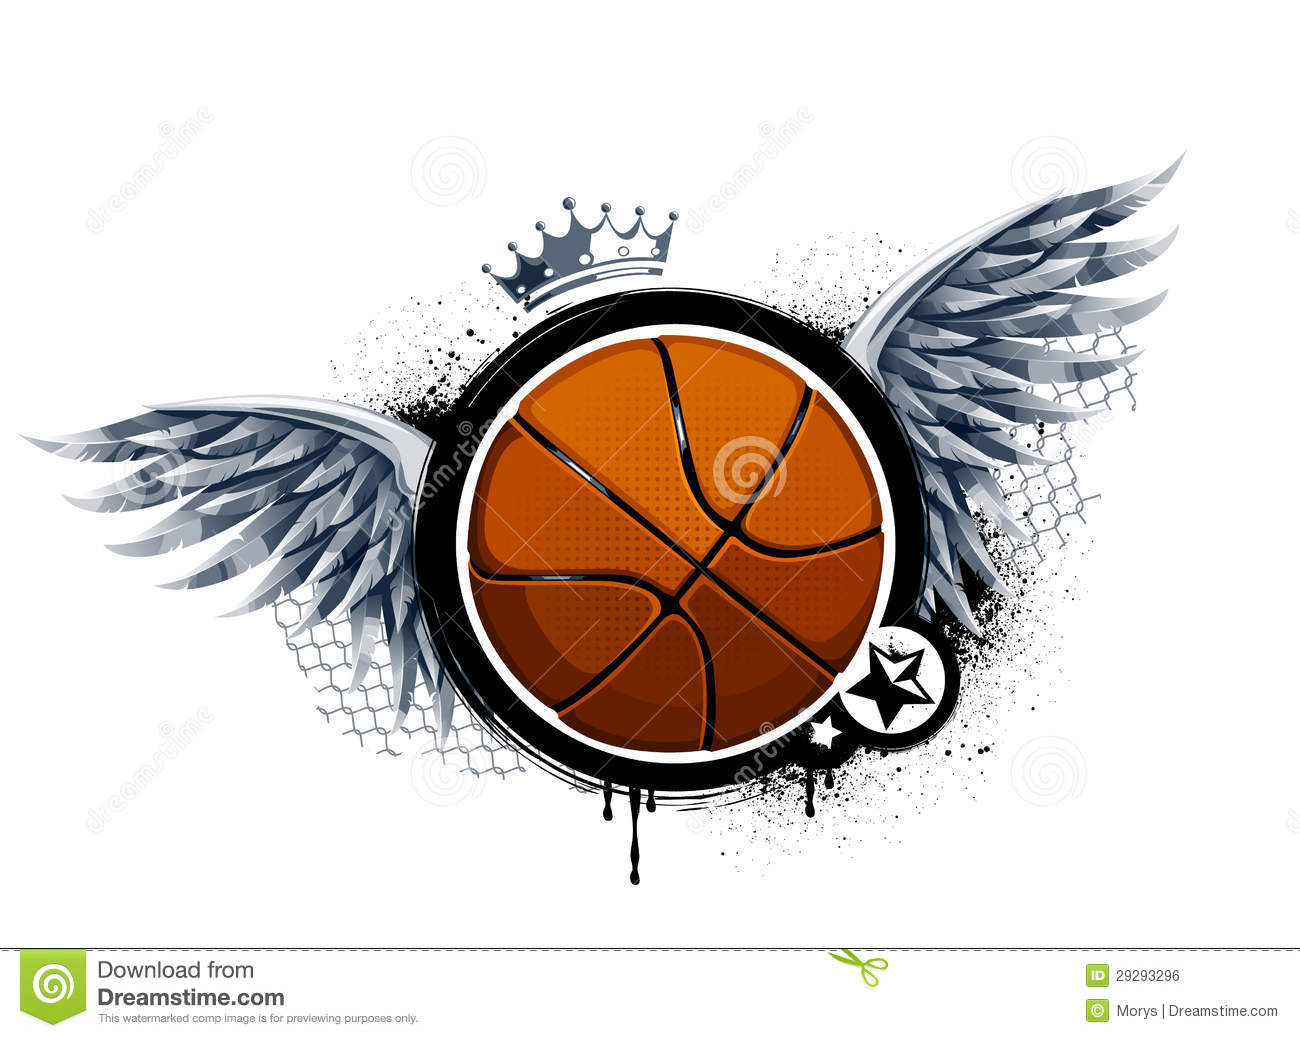 Graffiti Image With Basketball Stock Vector Illustration Of